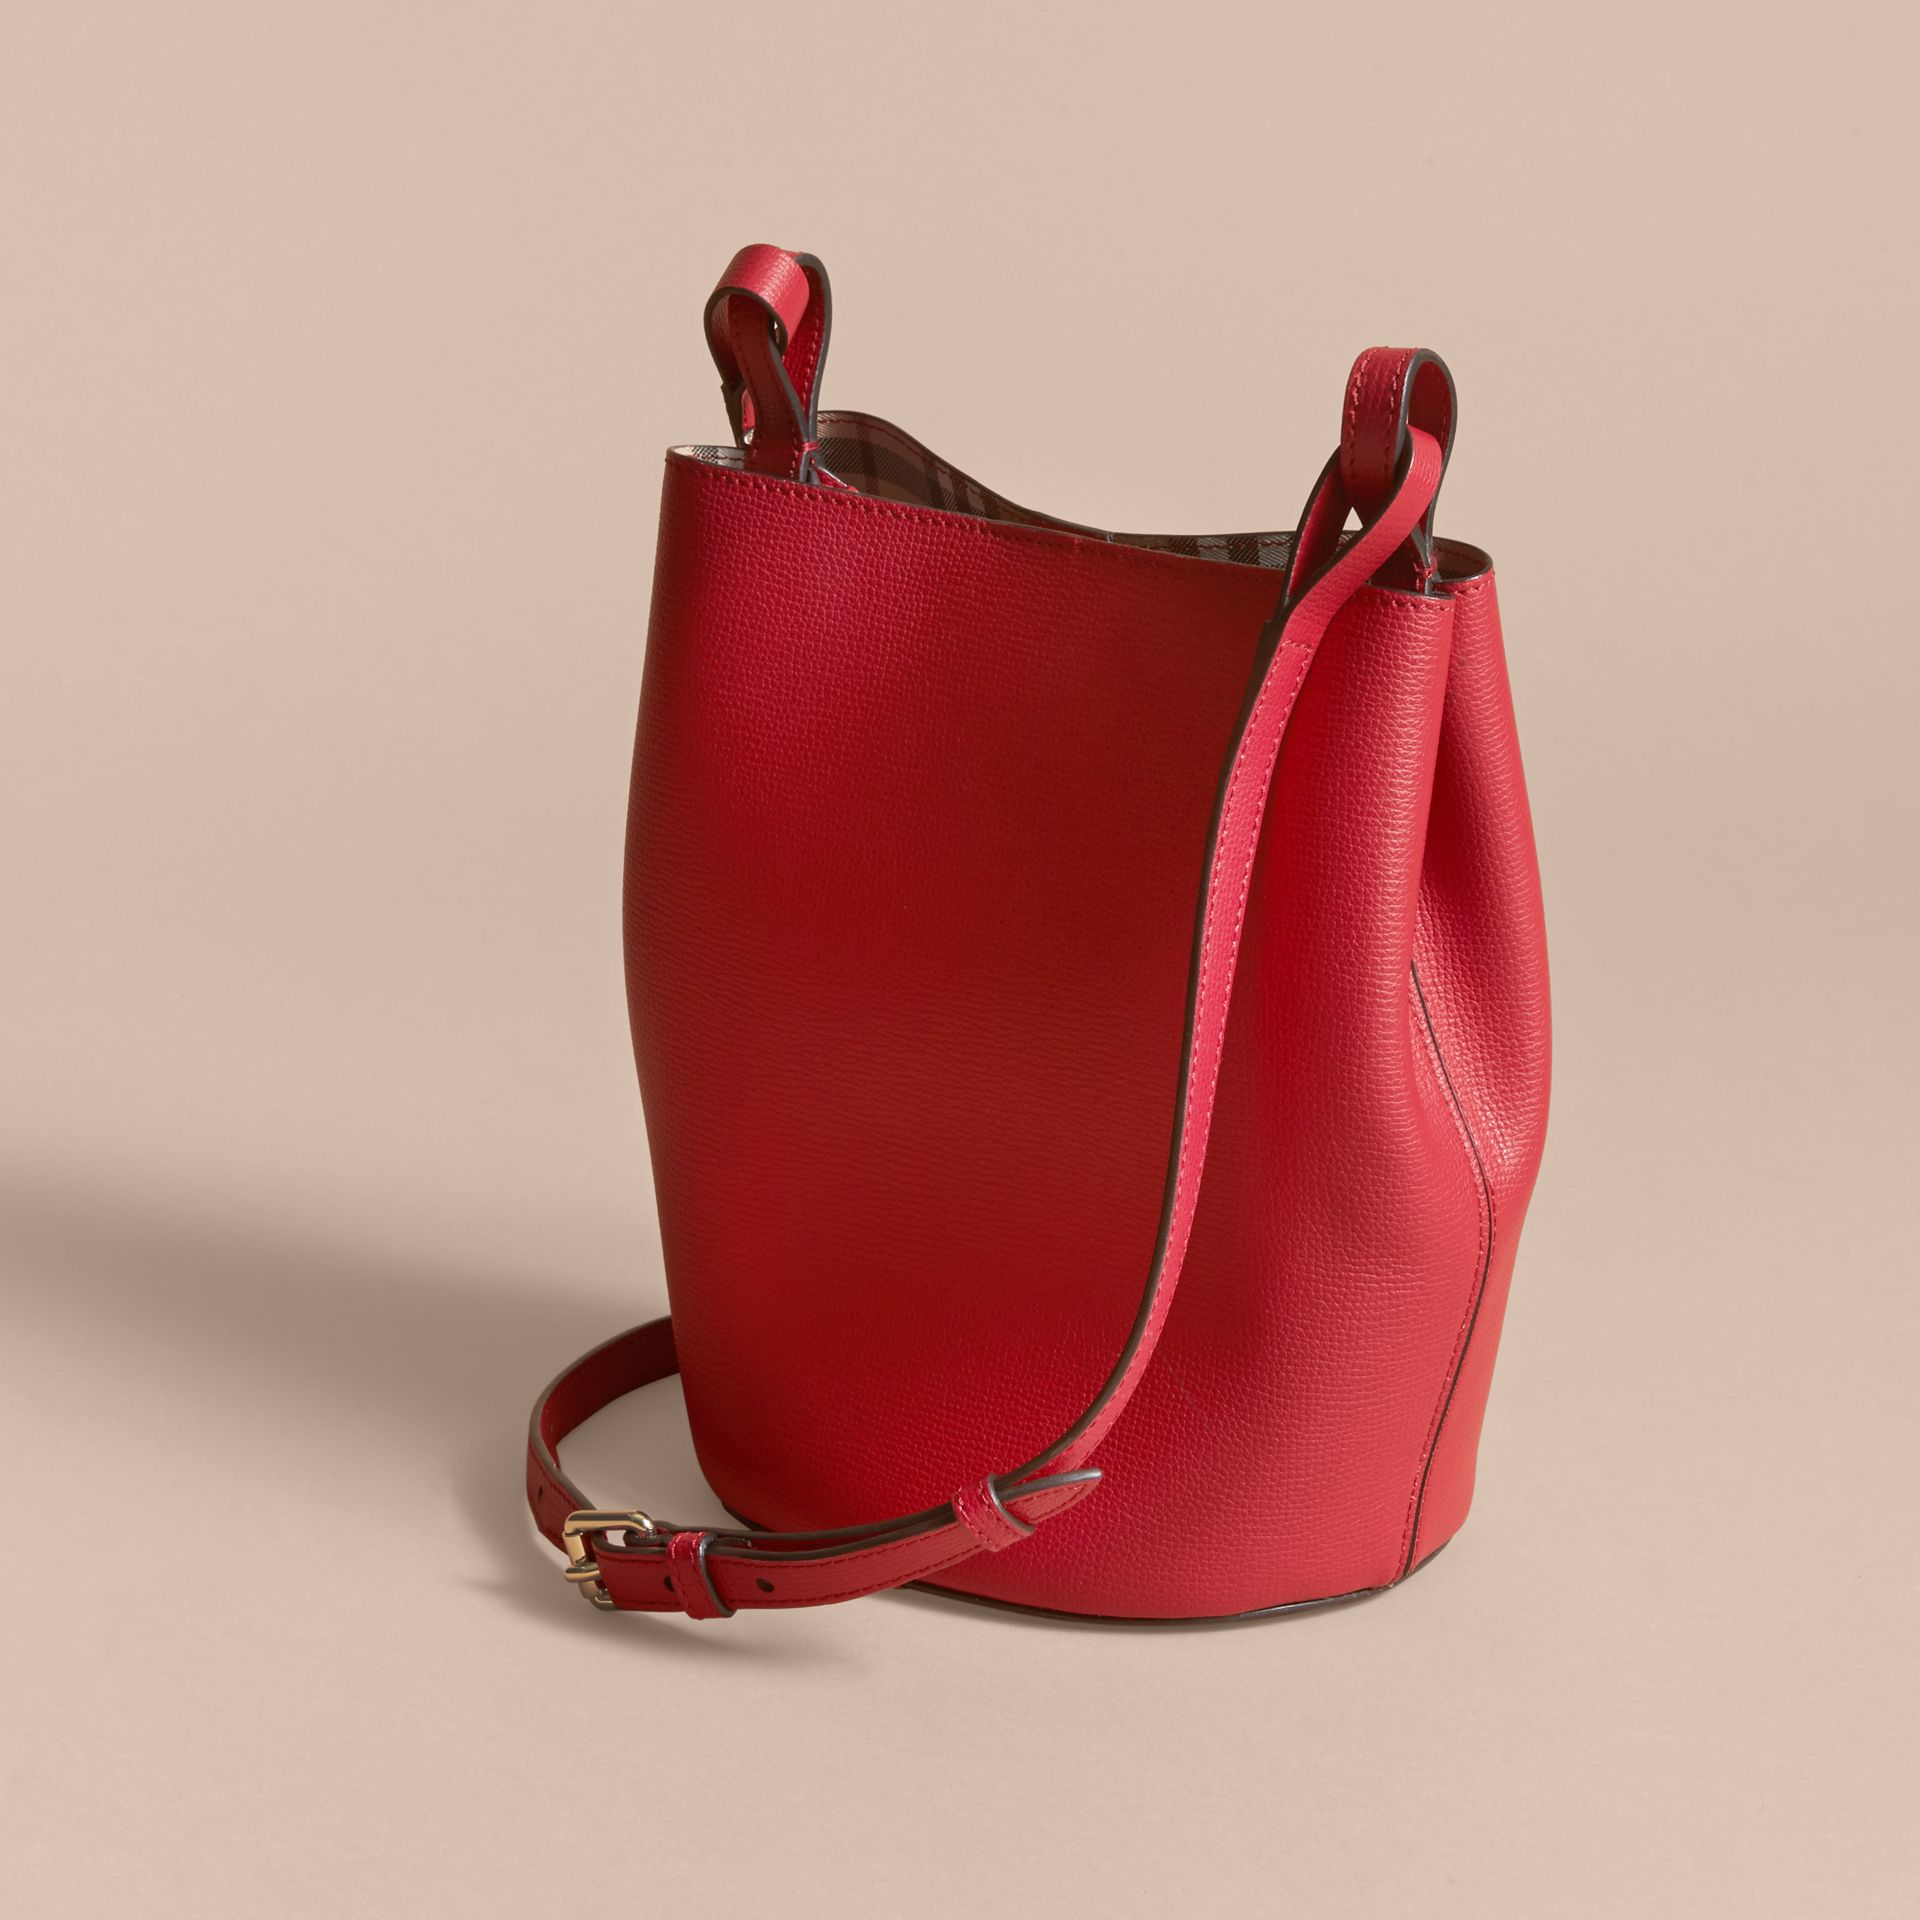 Leather and Haymarket Check Crossbody Bucket Bag in Poppy Red - Women | Burberry Australia - gallery image 4